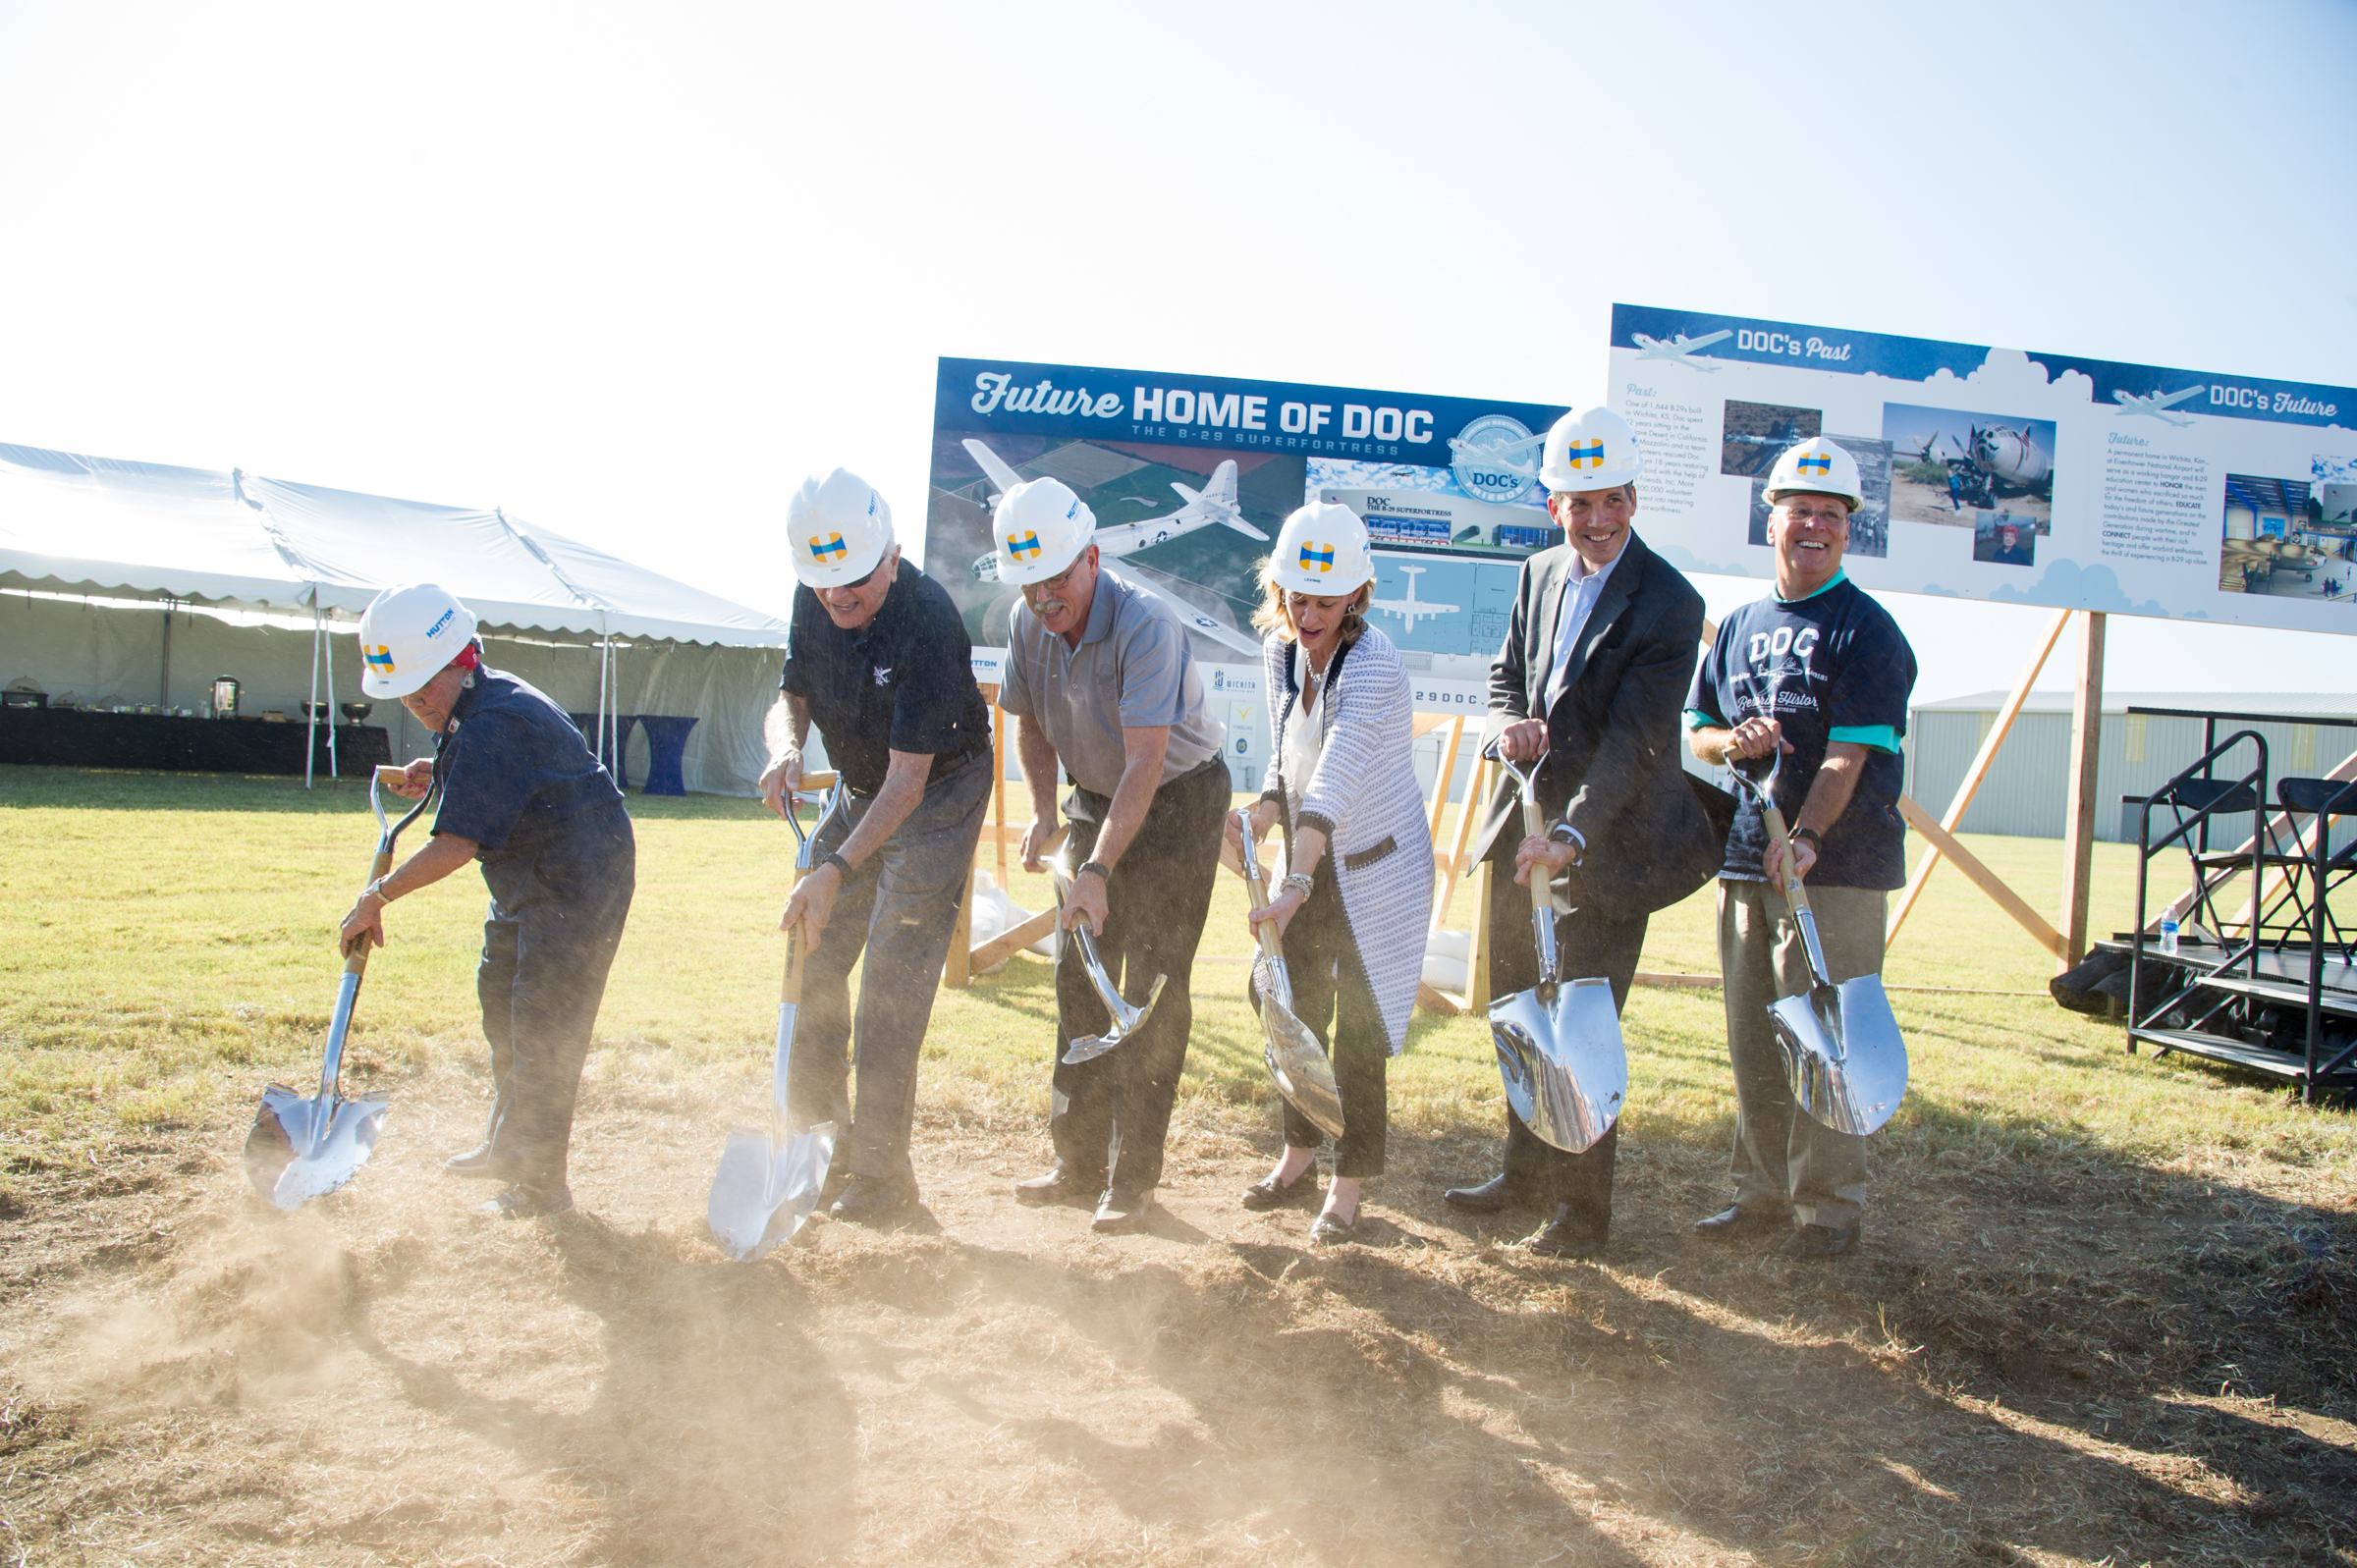 Doc's Friends announces major hangar gifts from Boeing and Spirit AeroSystems, breaks ground on future home for B-29 Doc